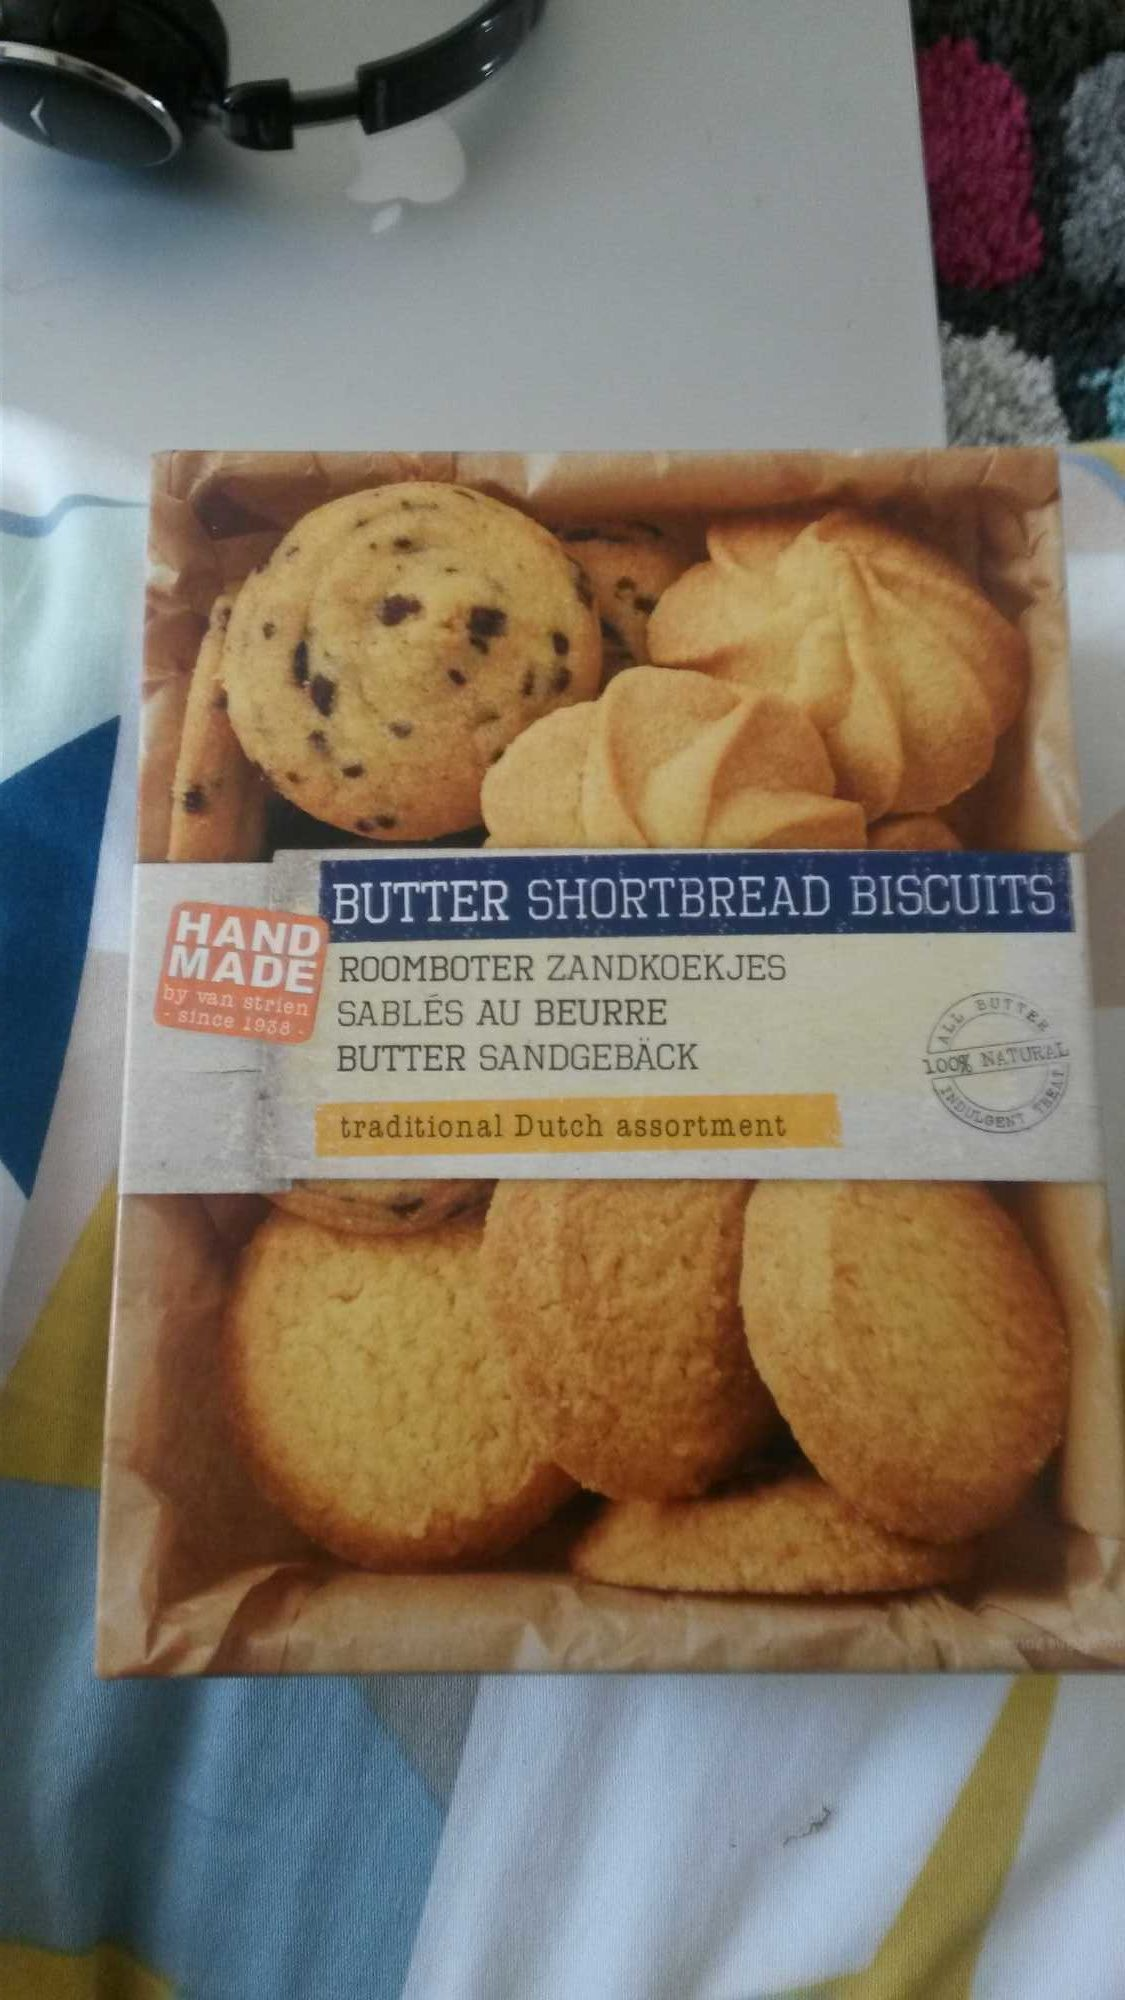 butter shortbread biscuits - Product